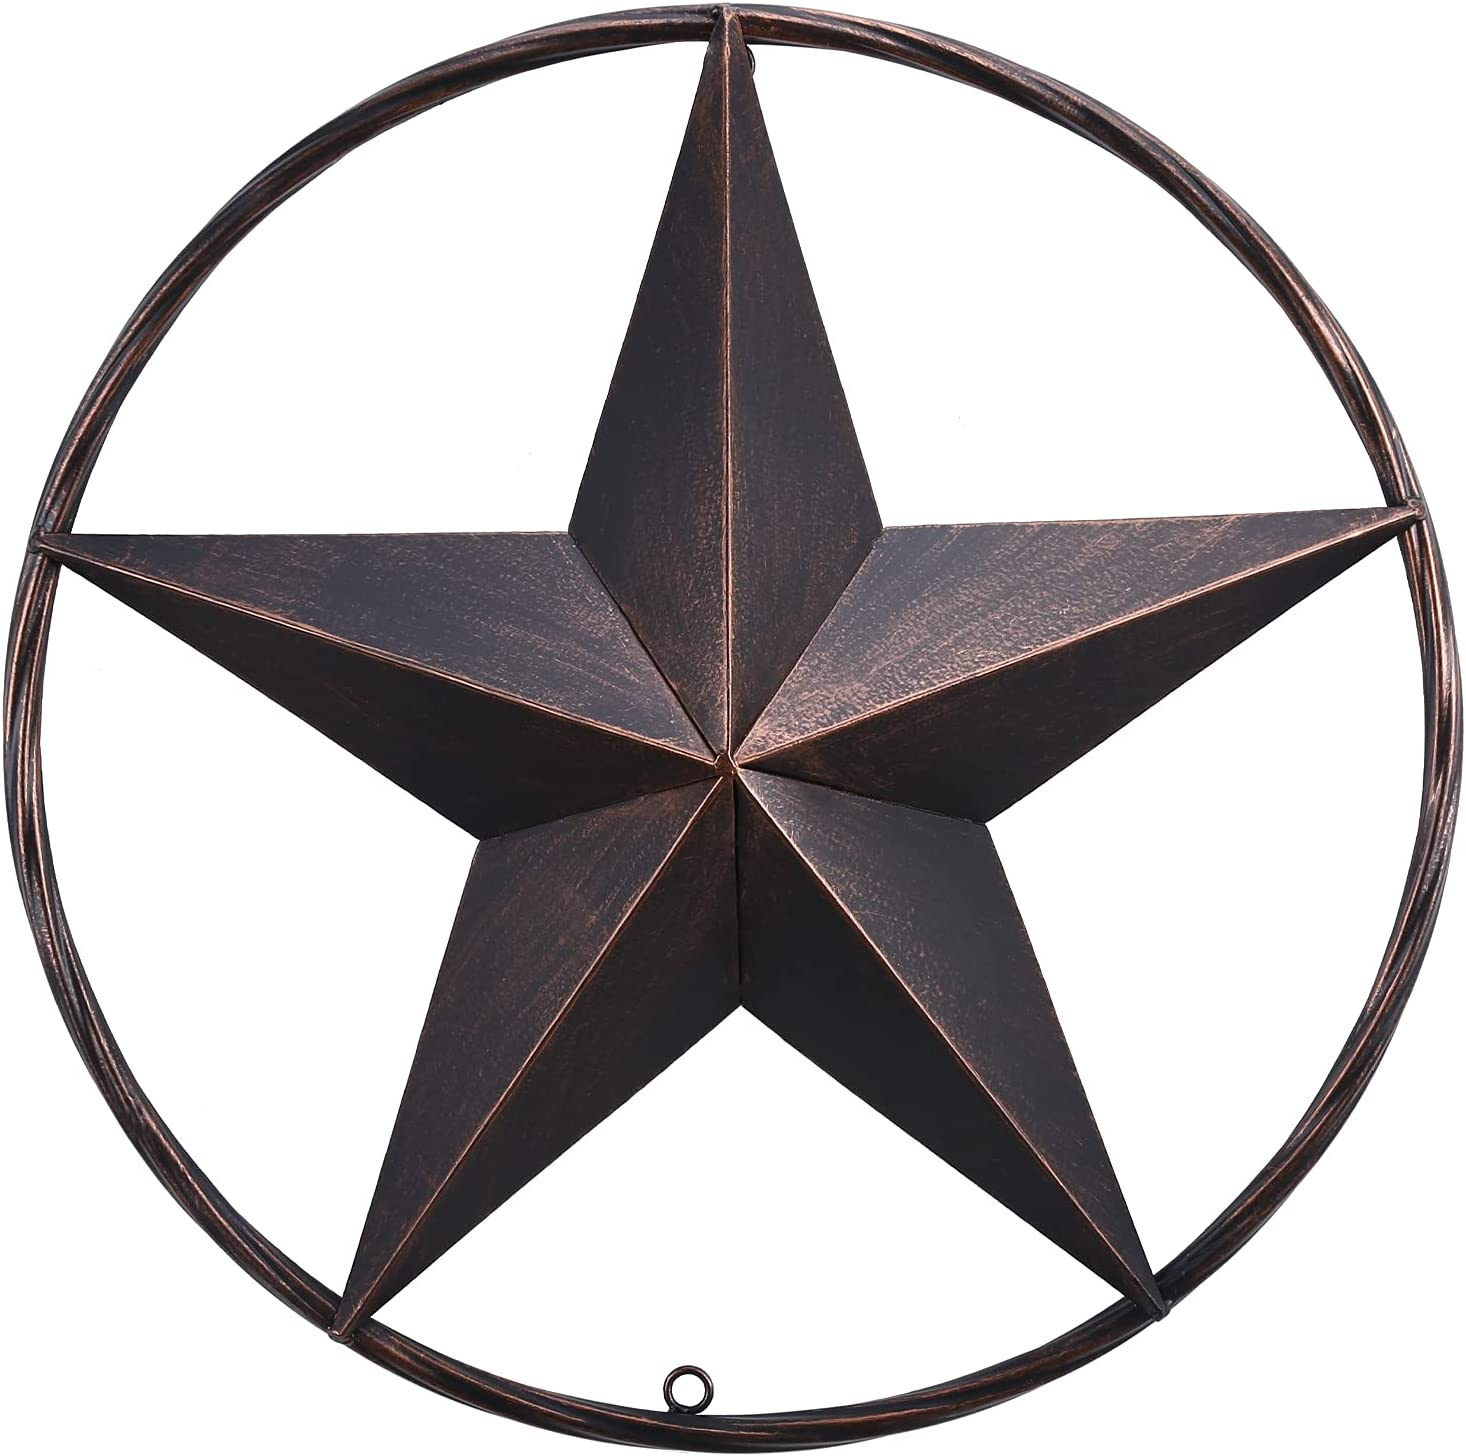 18 inch Dark Bronze Barn Star for Wall,Metal Stars for Outside, Texas Star Metal Wall Décor for House, Iron Rustic Vintage Decoration, Western Country Home Farmhouse Wall Art Outdoor Decorations